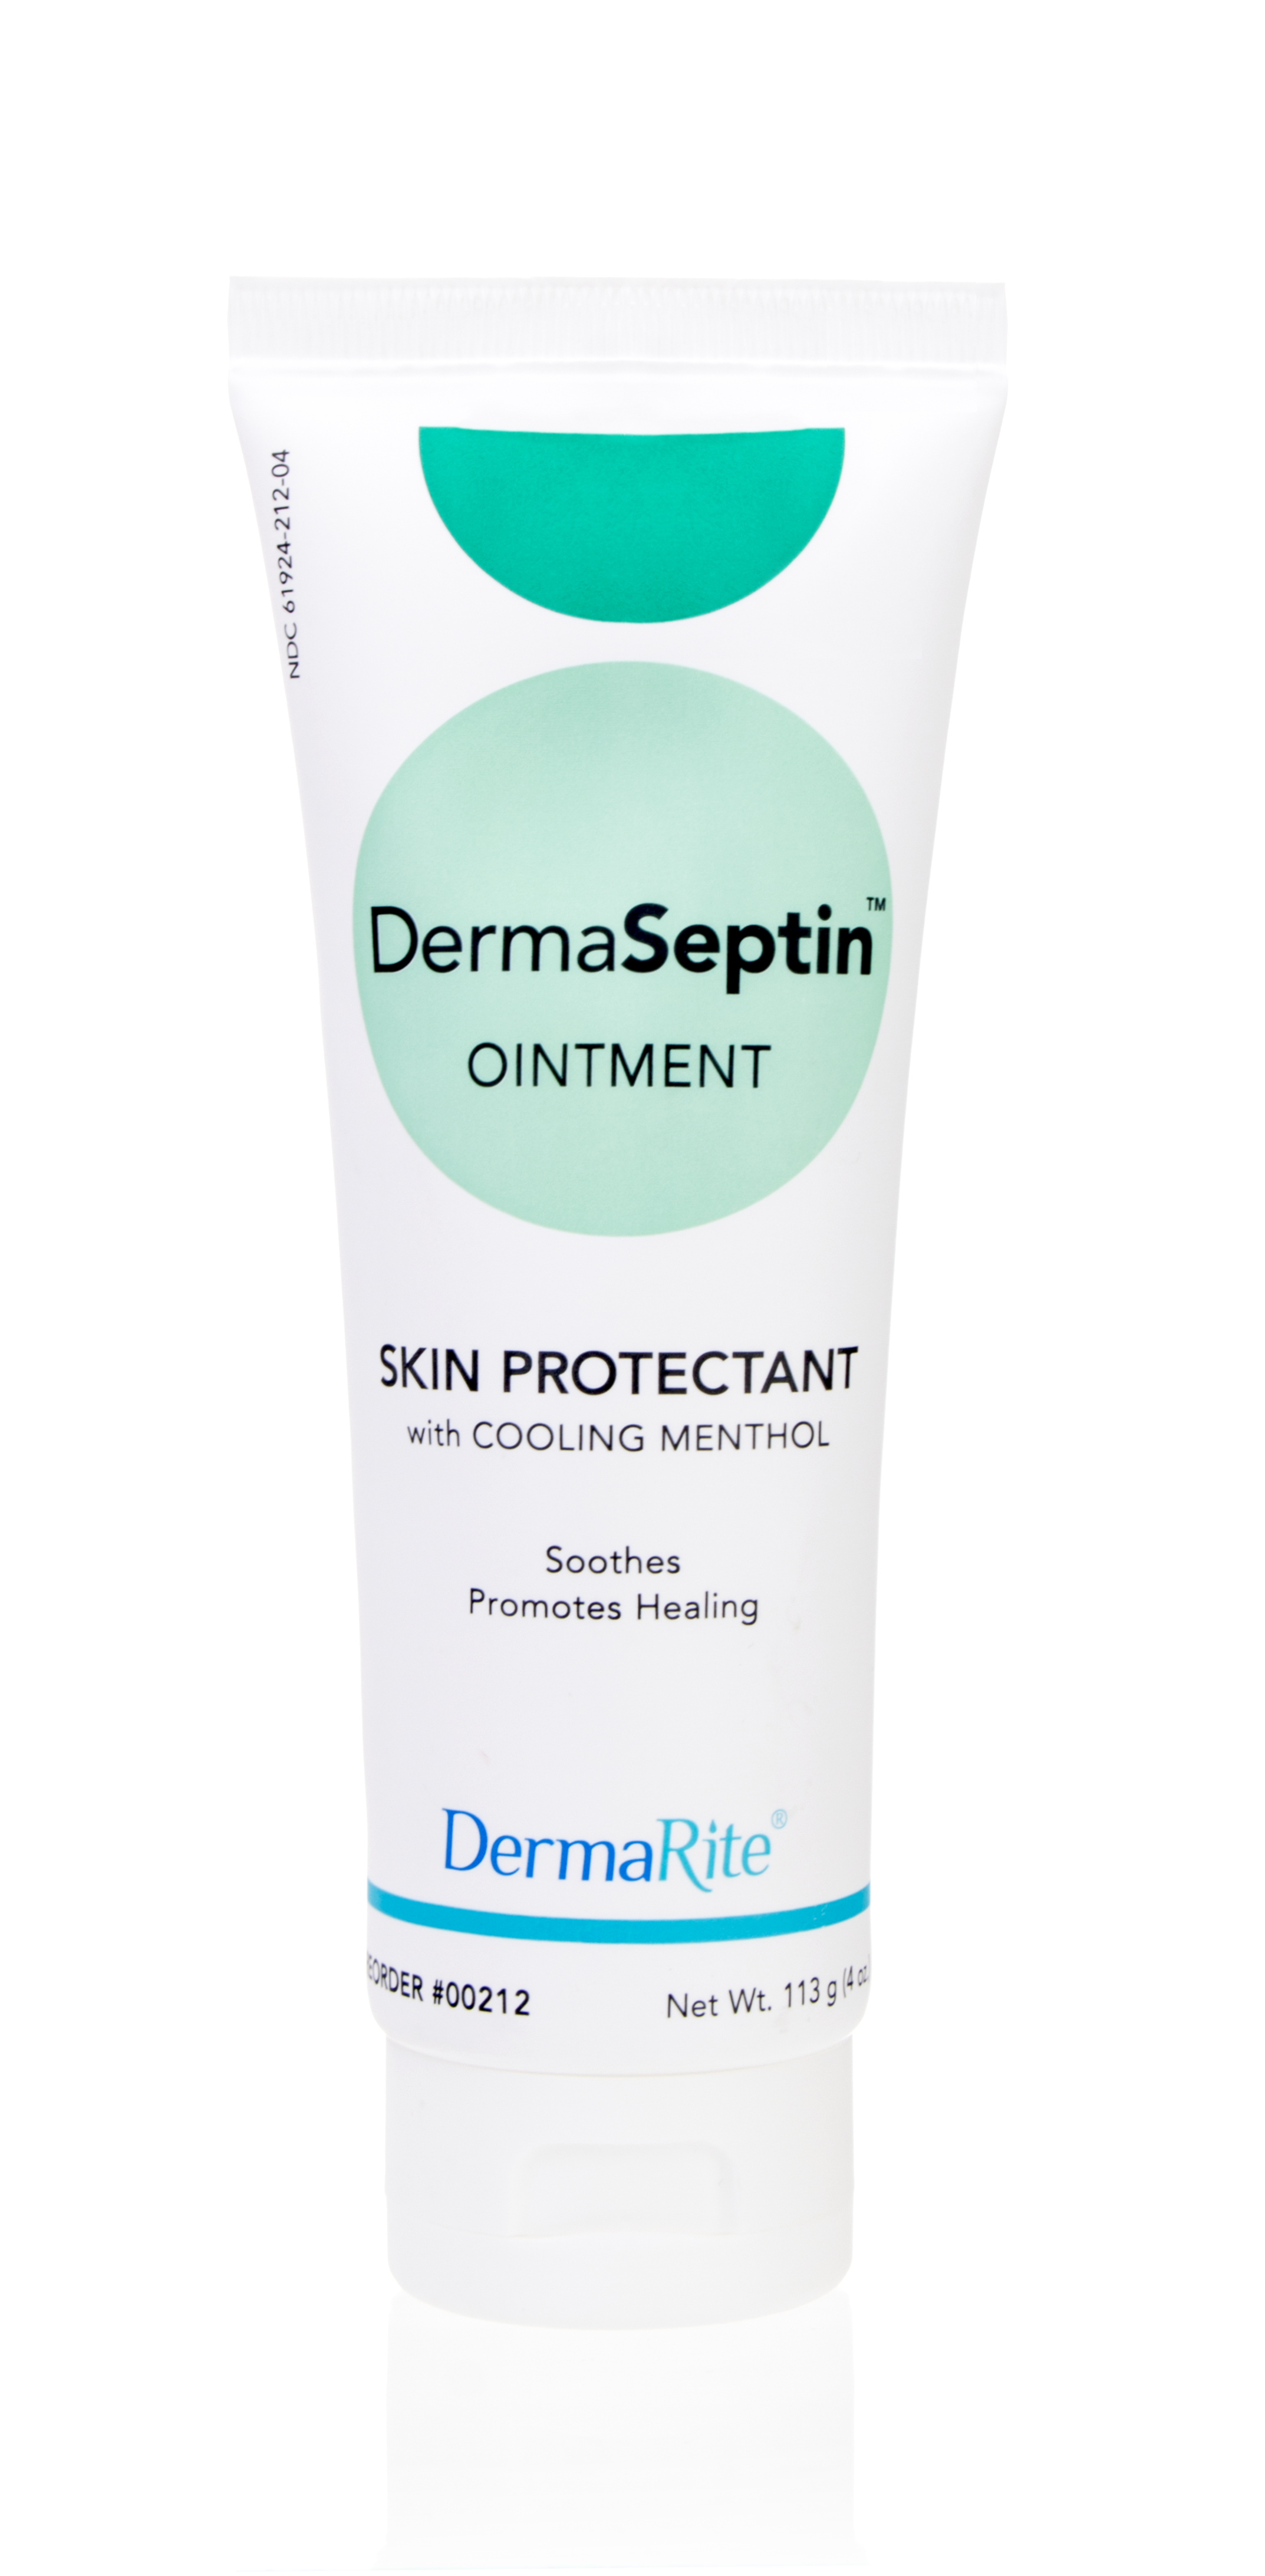 DermaSeptin Skin Protectant Ointment, 4 oz. Tube, Scented